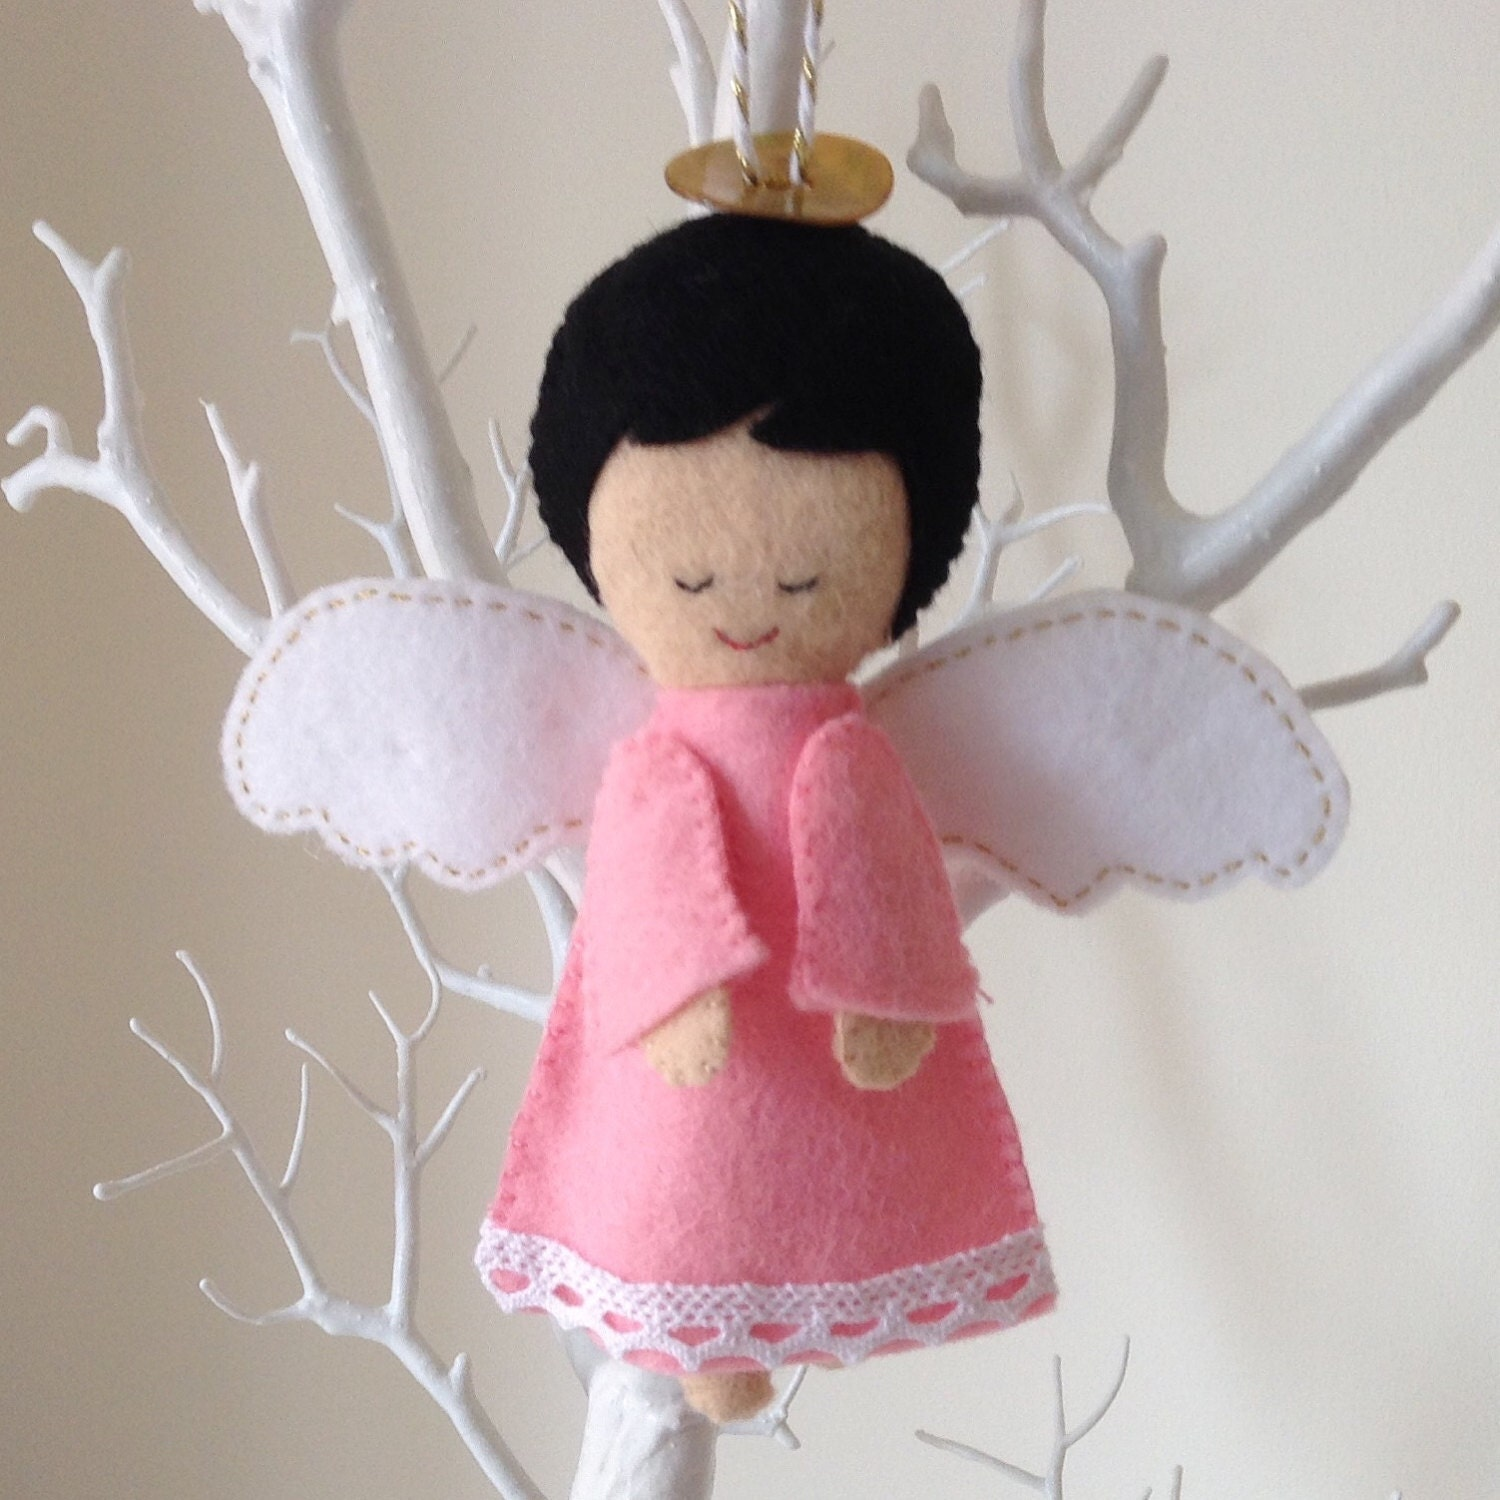 Angel Baby Gifts Uk : Guardian angel ornament unique baby shower gift by bellaandroo